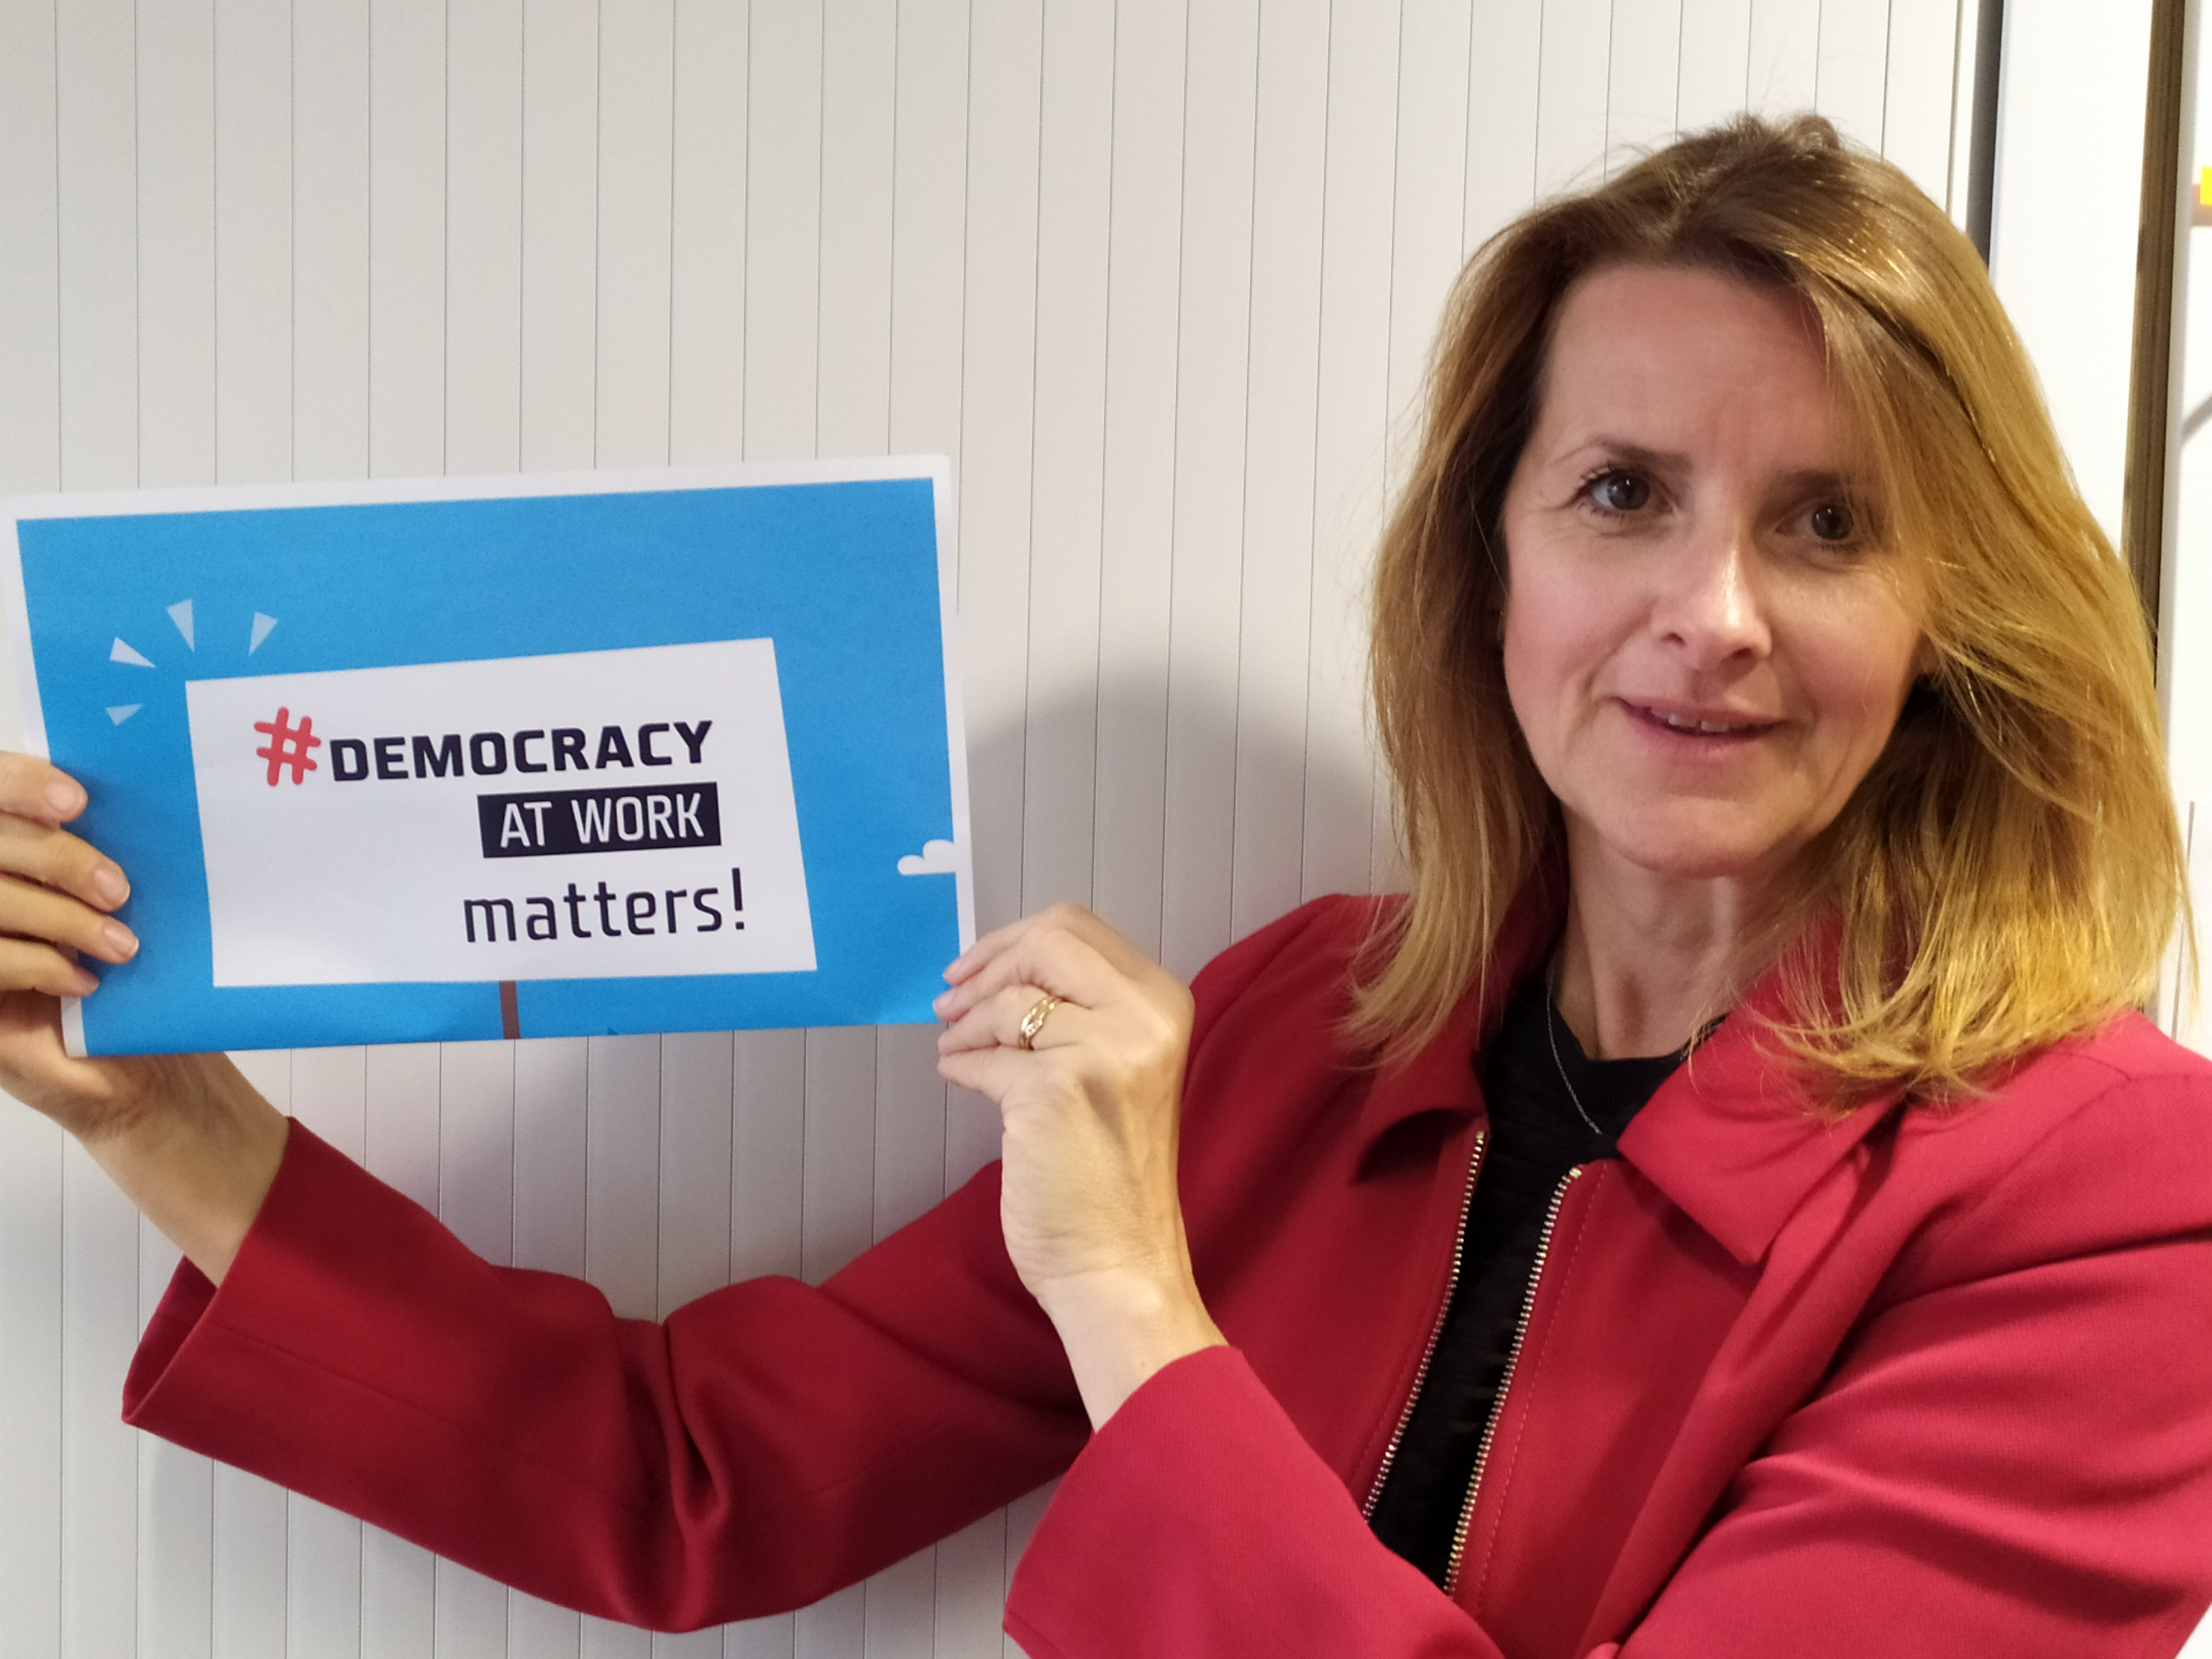 ETUC Isabelle Schomann call for more democracy at work